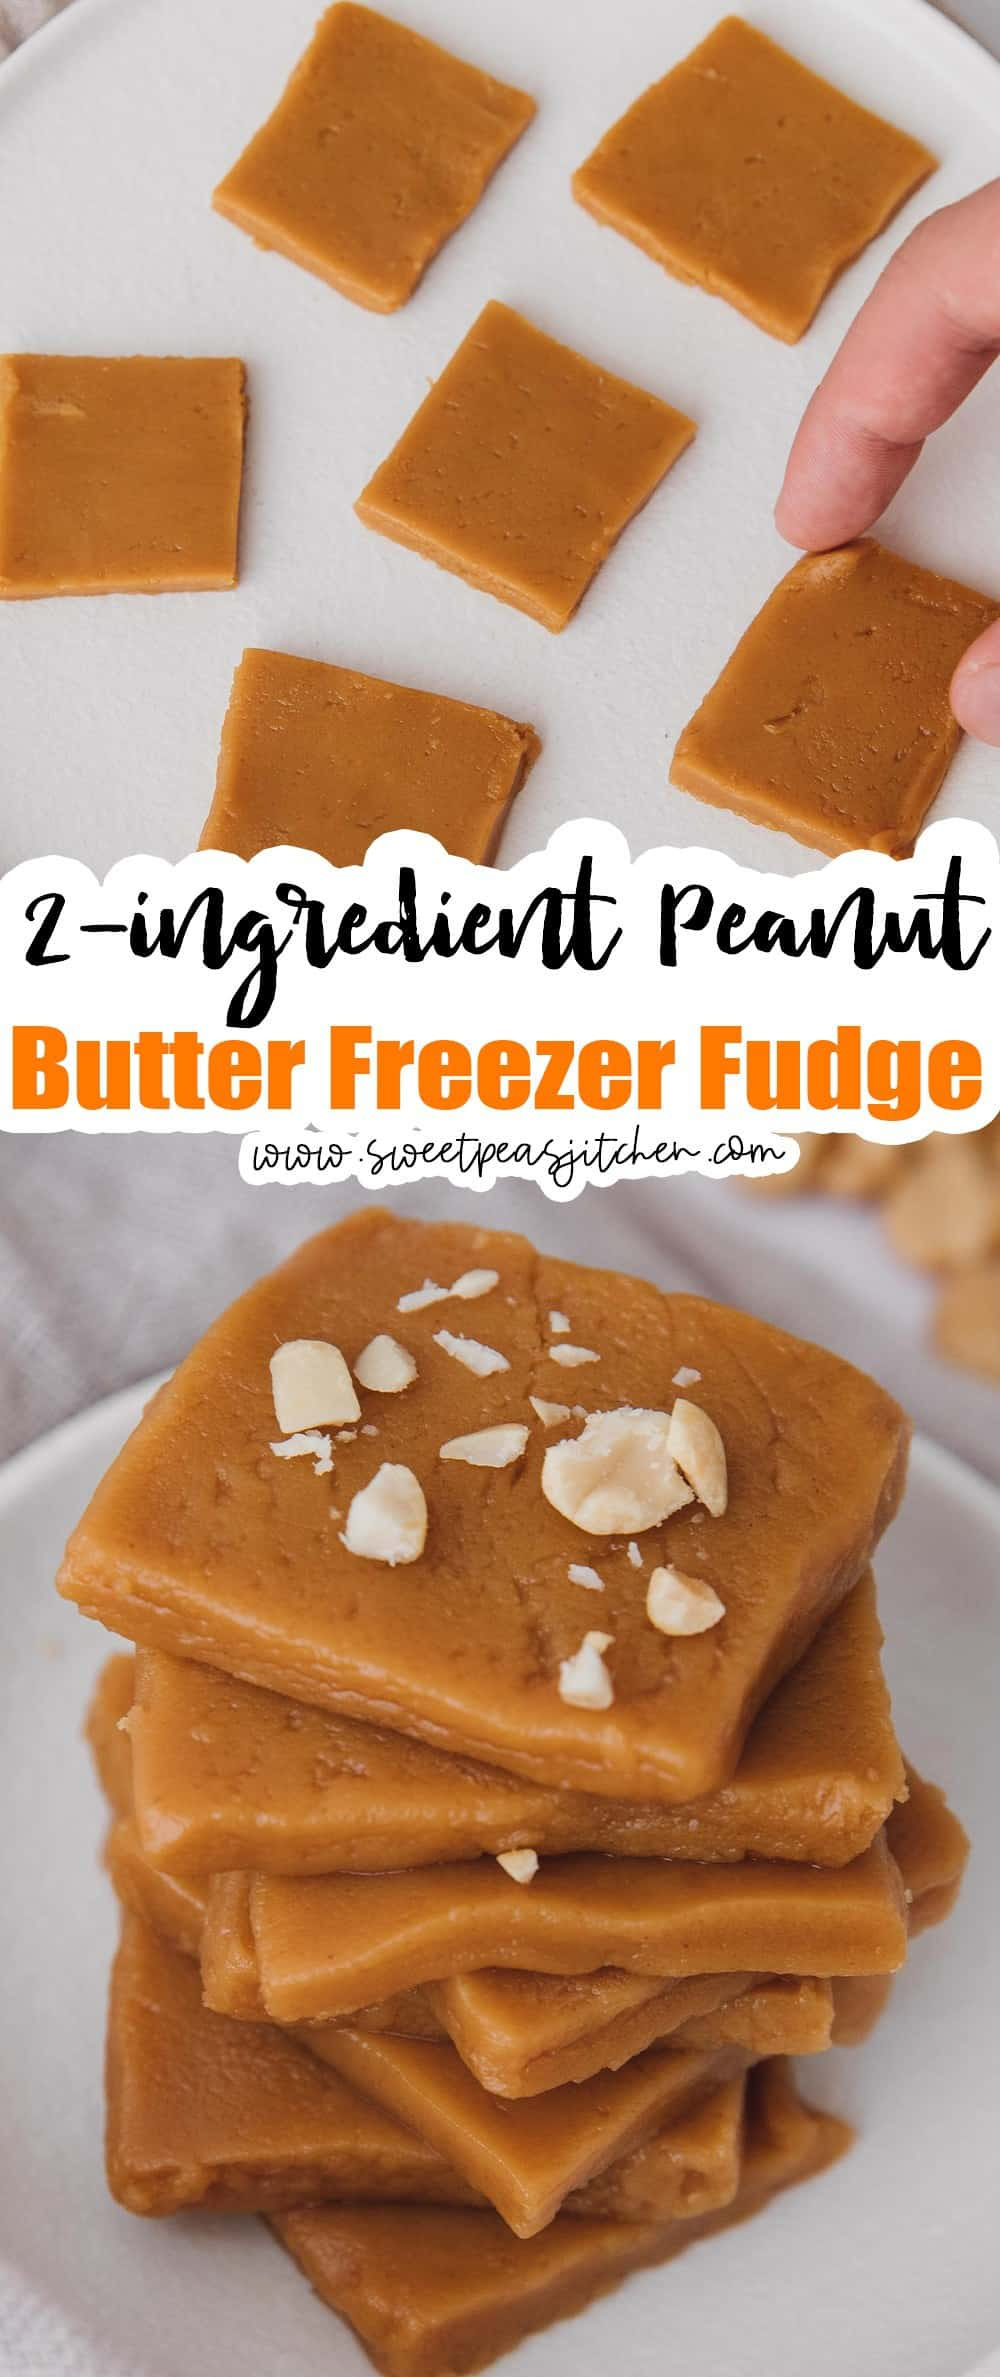 2-ingredient Peanut Butter Freezer Fudge